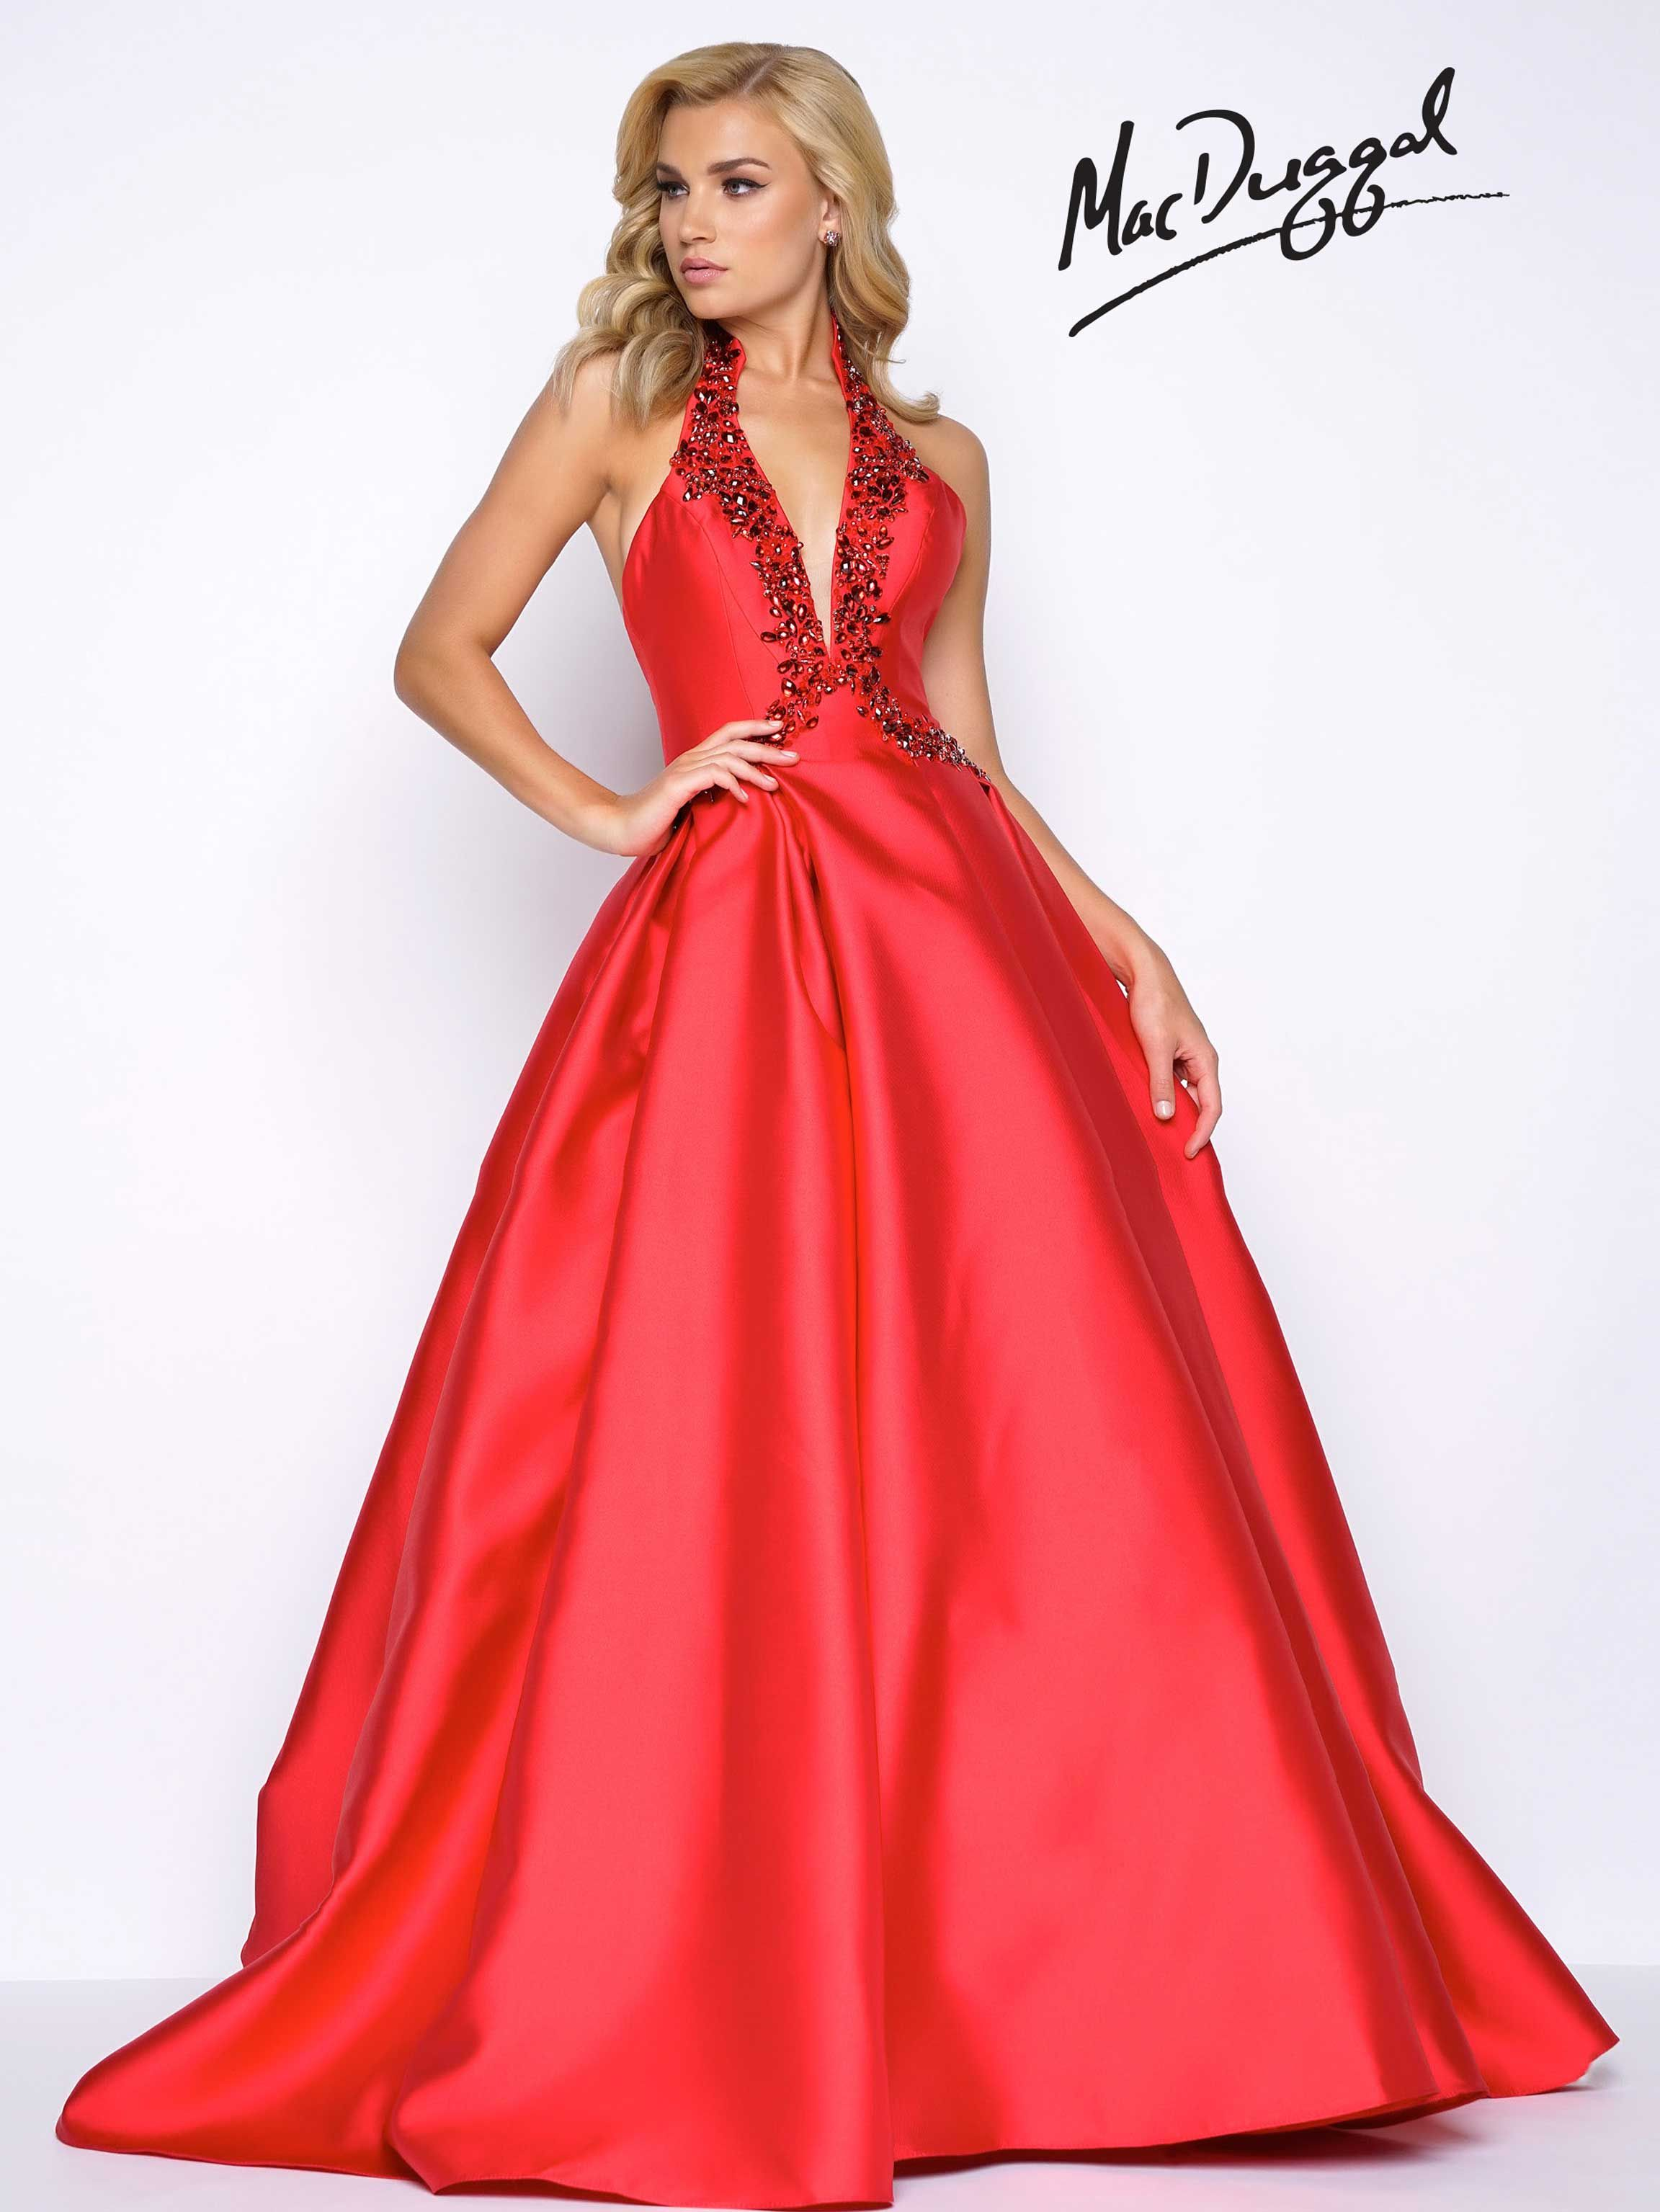 Halter neck, princess seam, fit and flare ball gown prom dress with ...